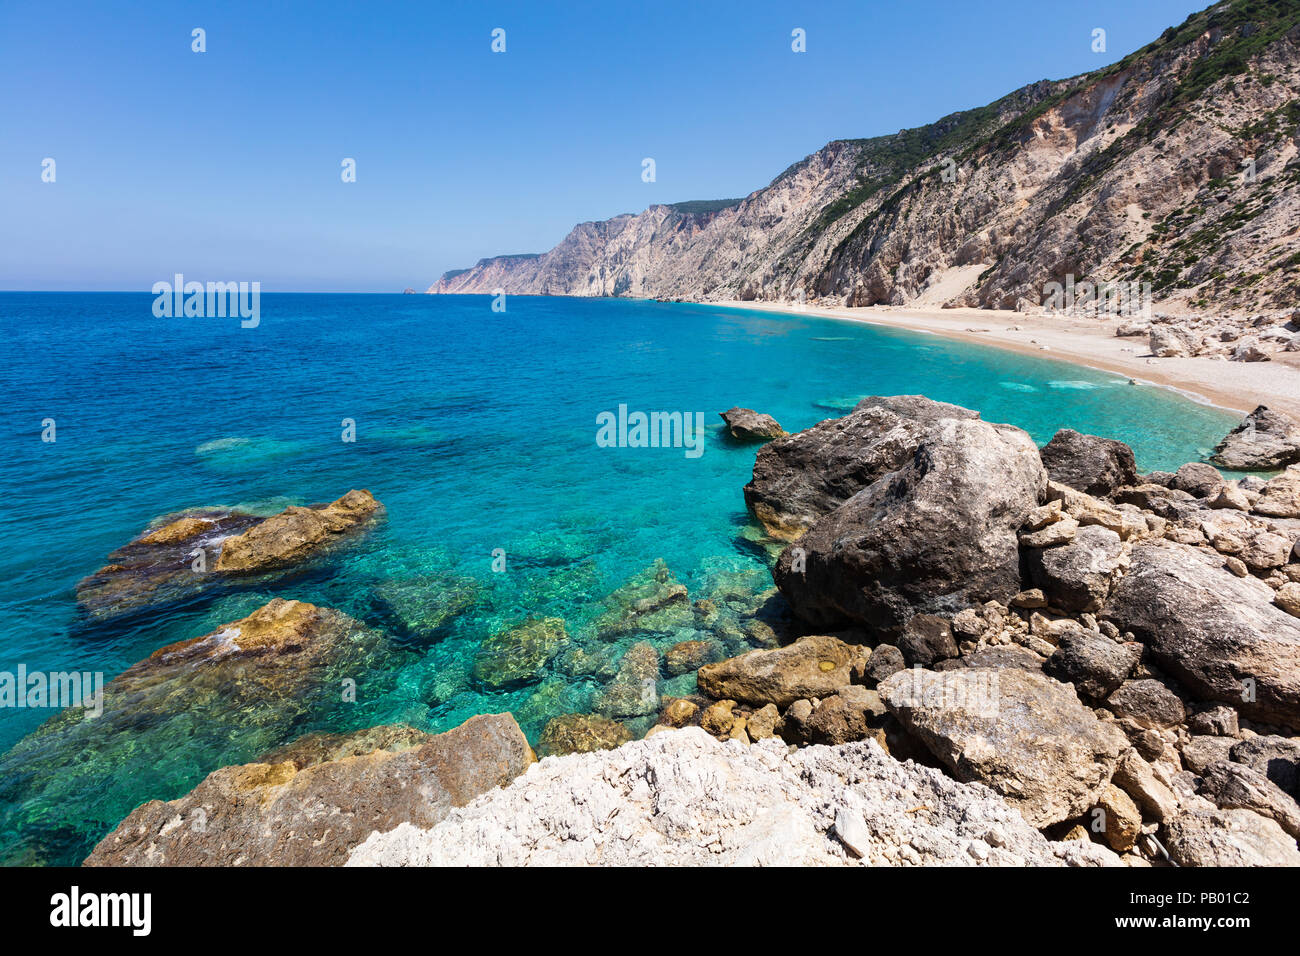 View from above to an untouchable beach of an island in Ionian sea - Stock Image